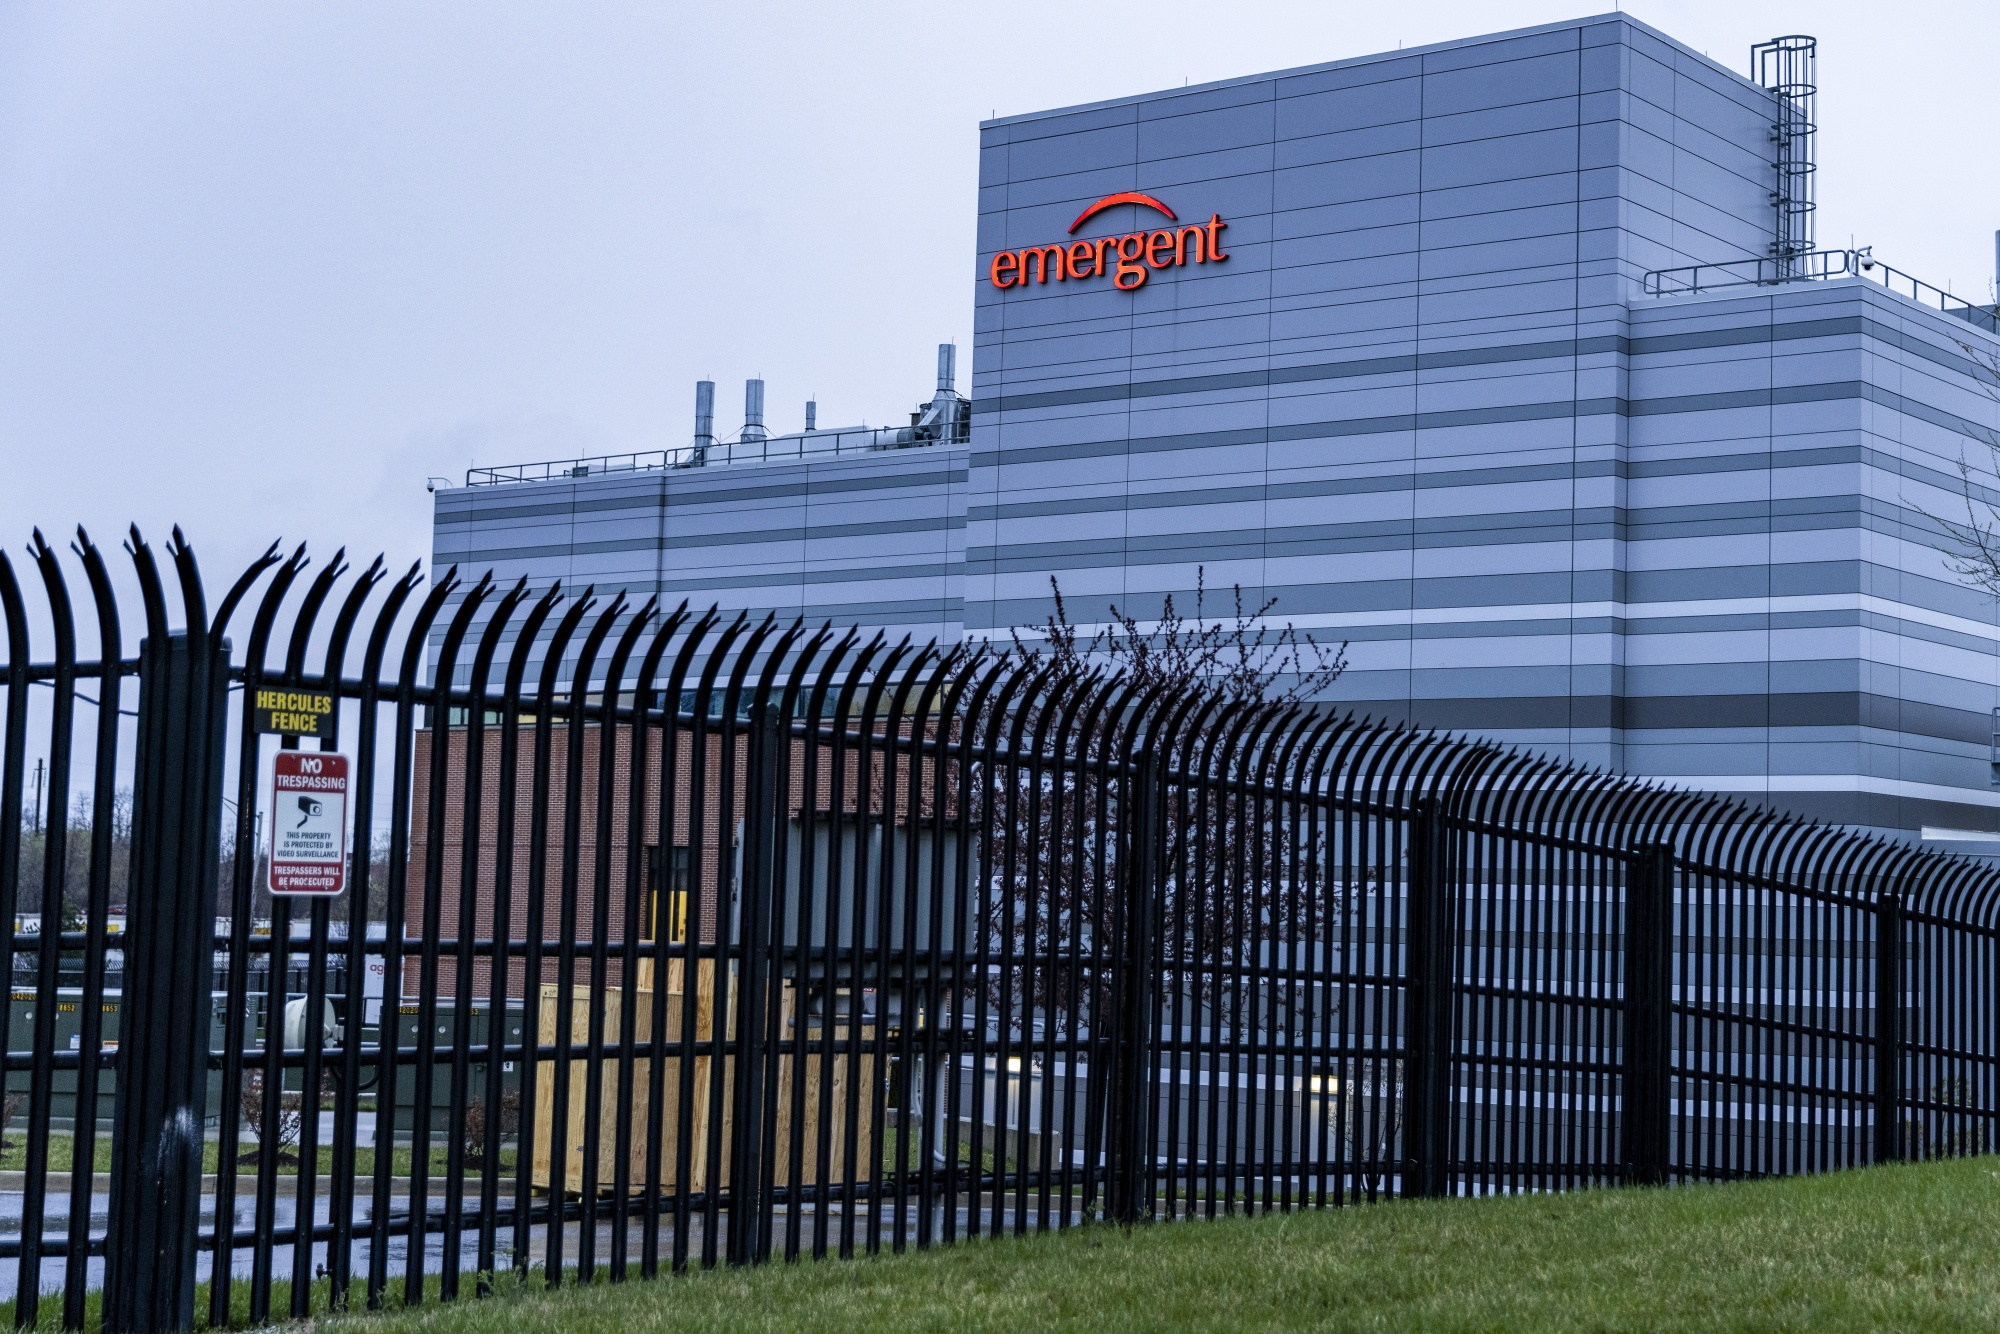 15 Million Doses Of Johnson & Johnson Vaccine Ruined At Baltimore Lab Mix-Up